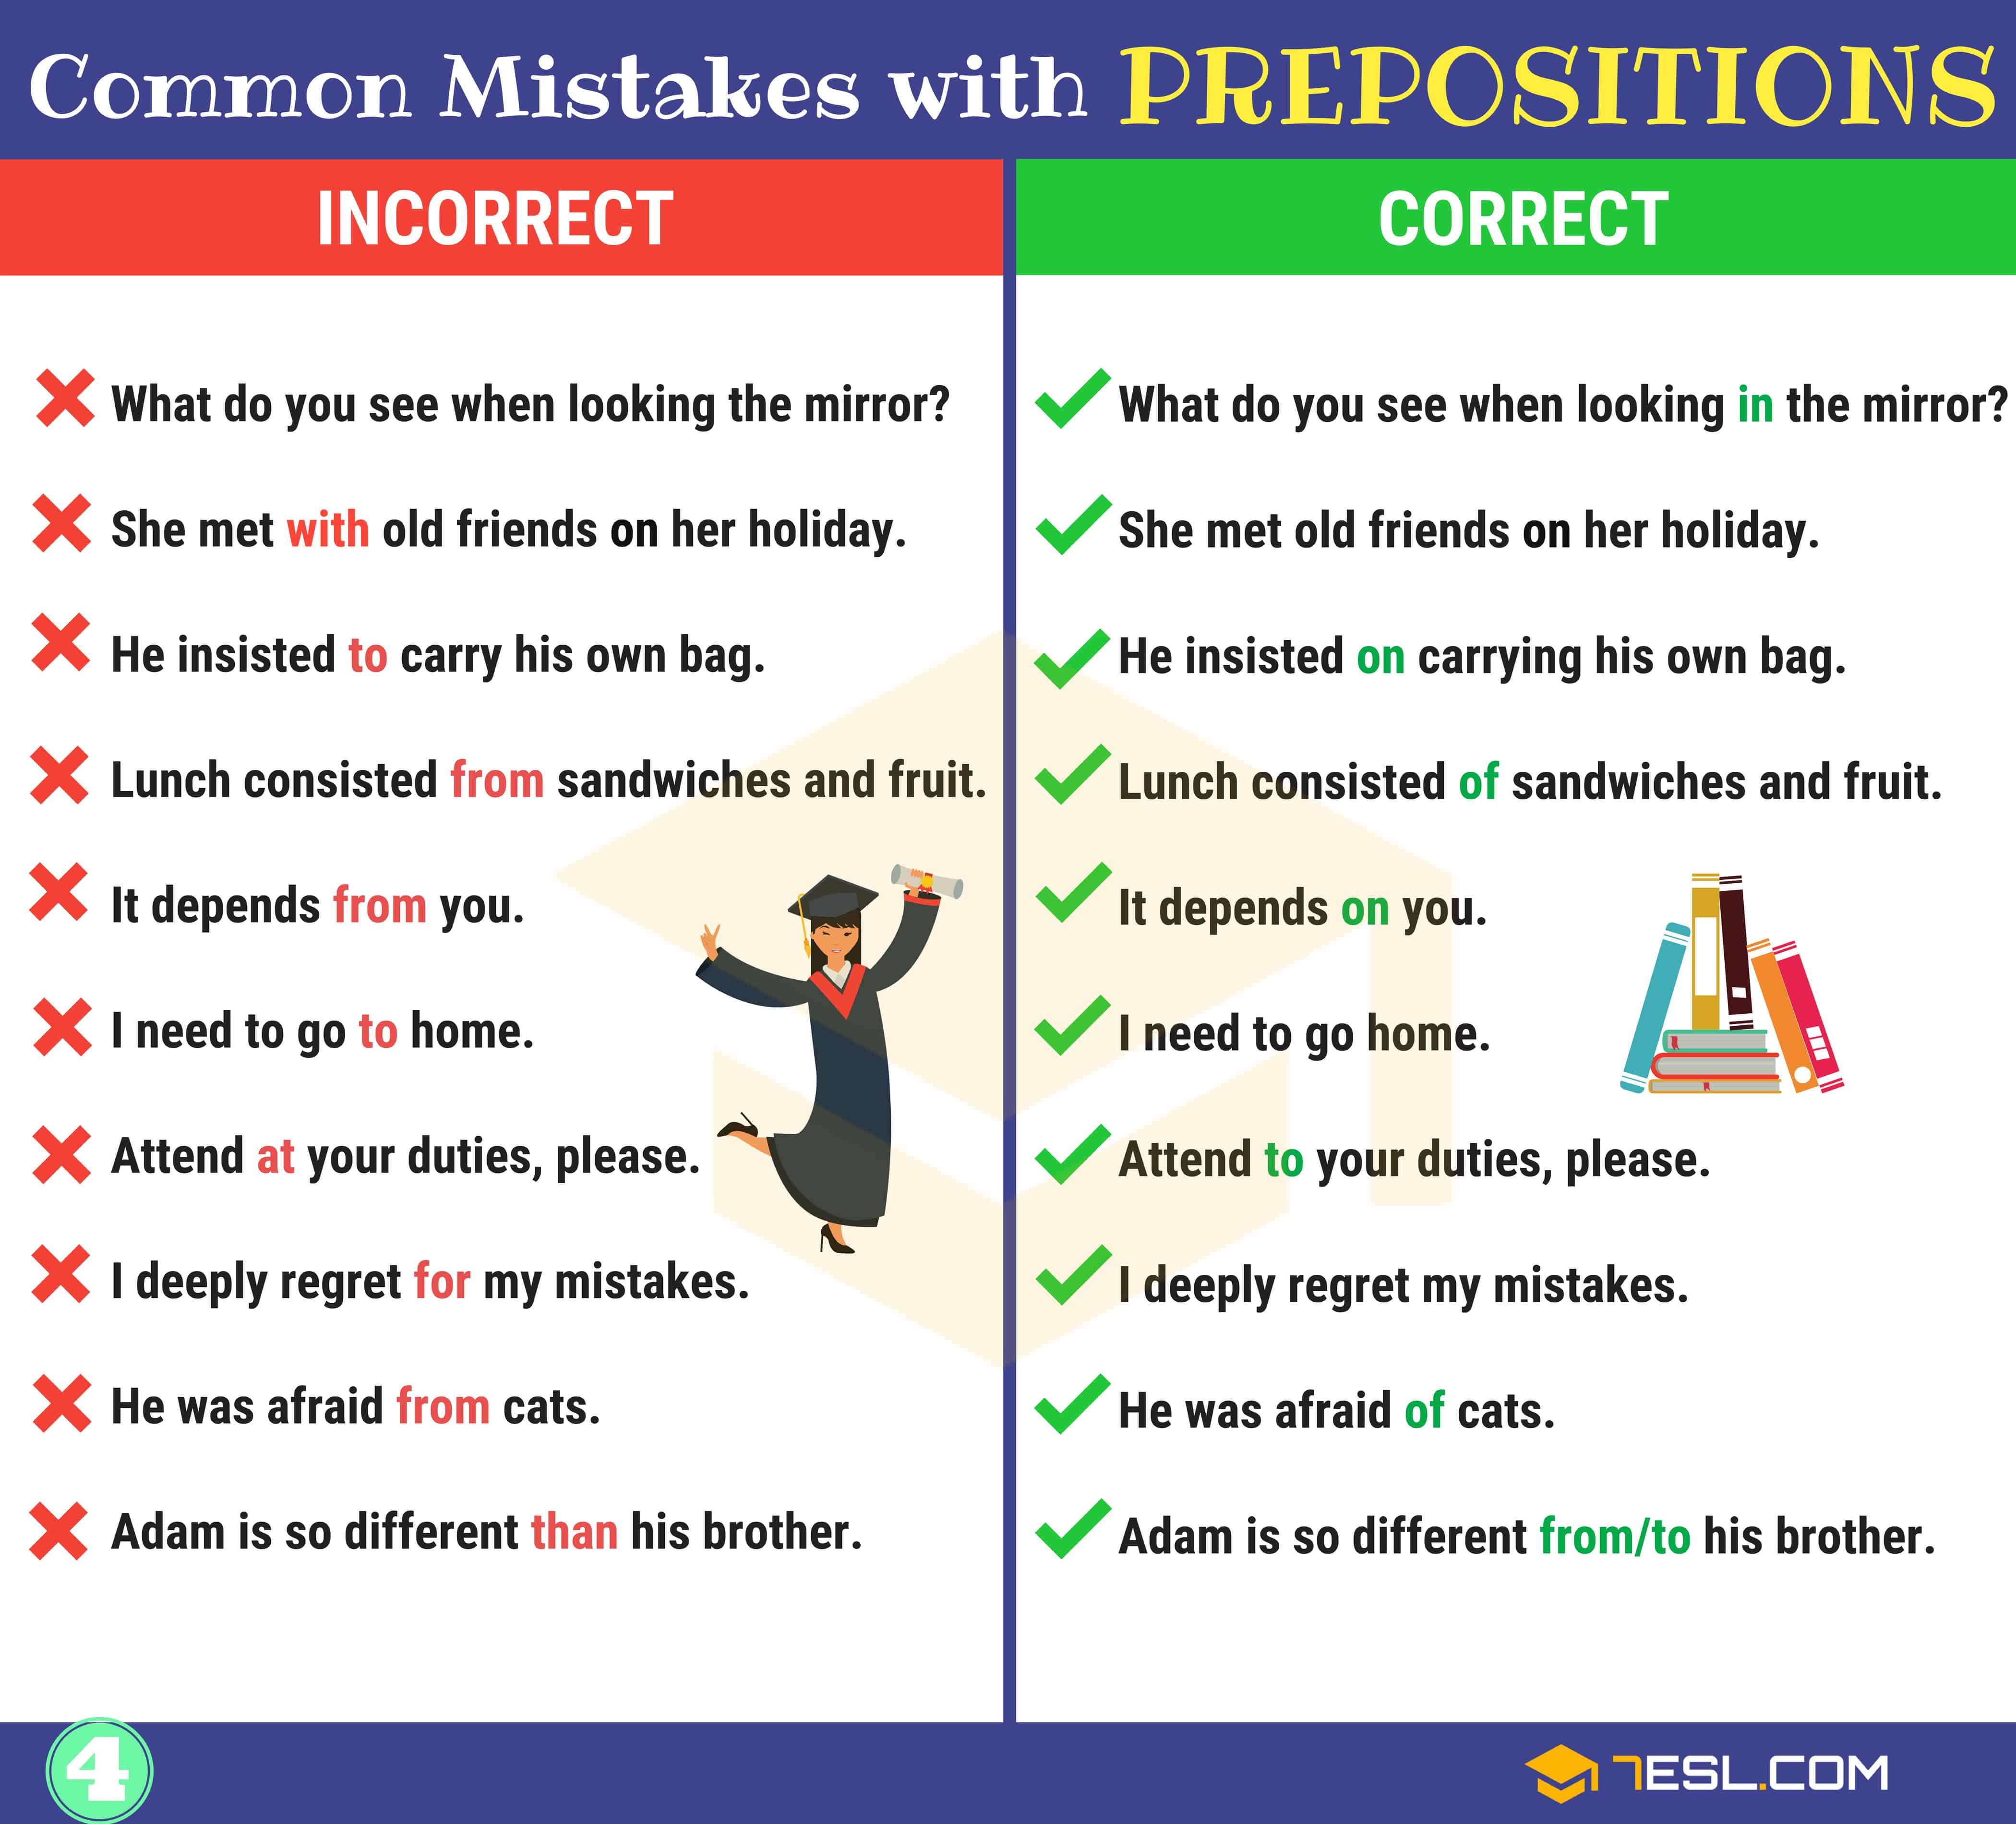 130+ Common MISTAKES With PREPOSITIONS And How To Avoid Them 5